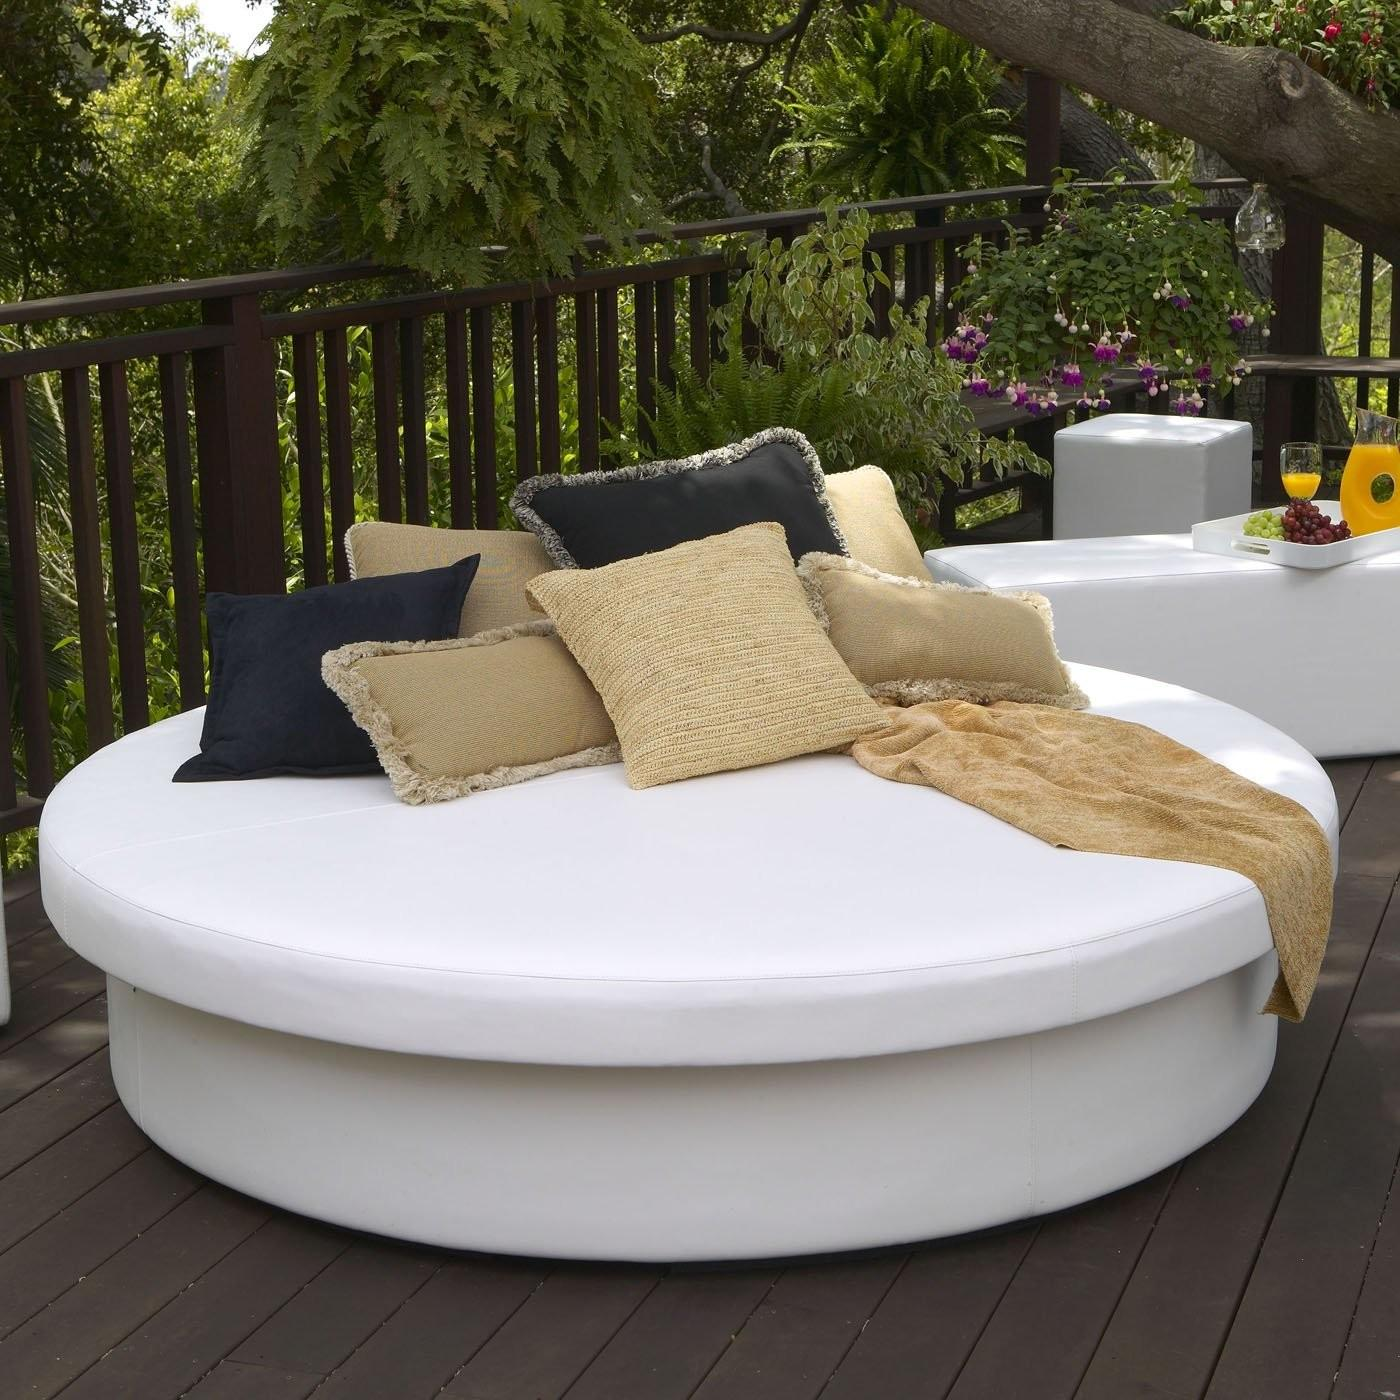 Fete Designs Sun Pad Outdoor Round Resort Daybed